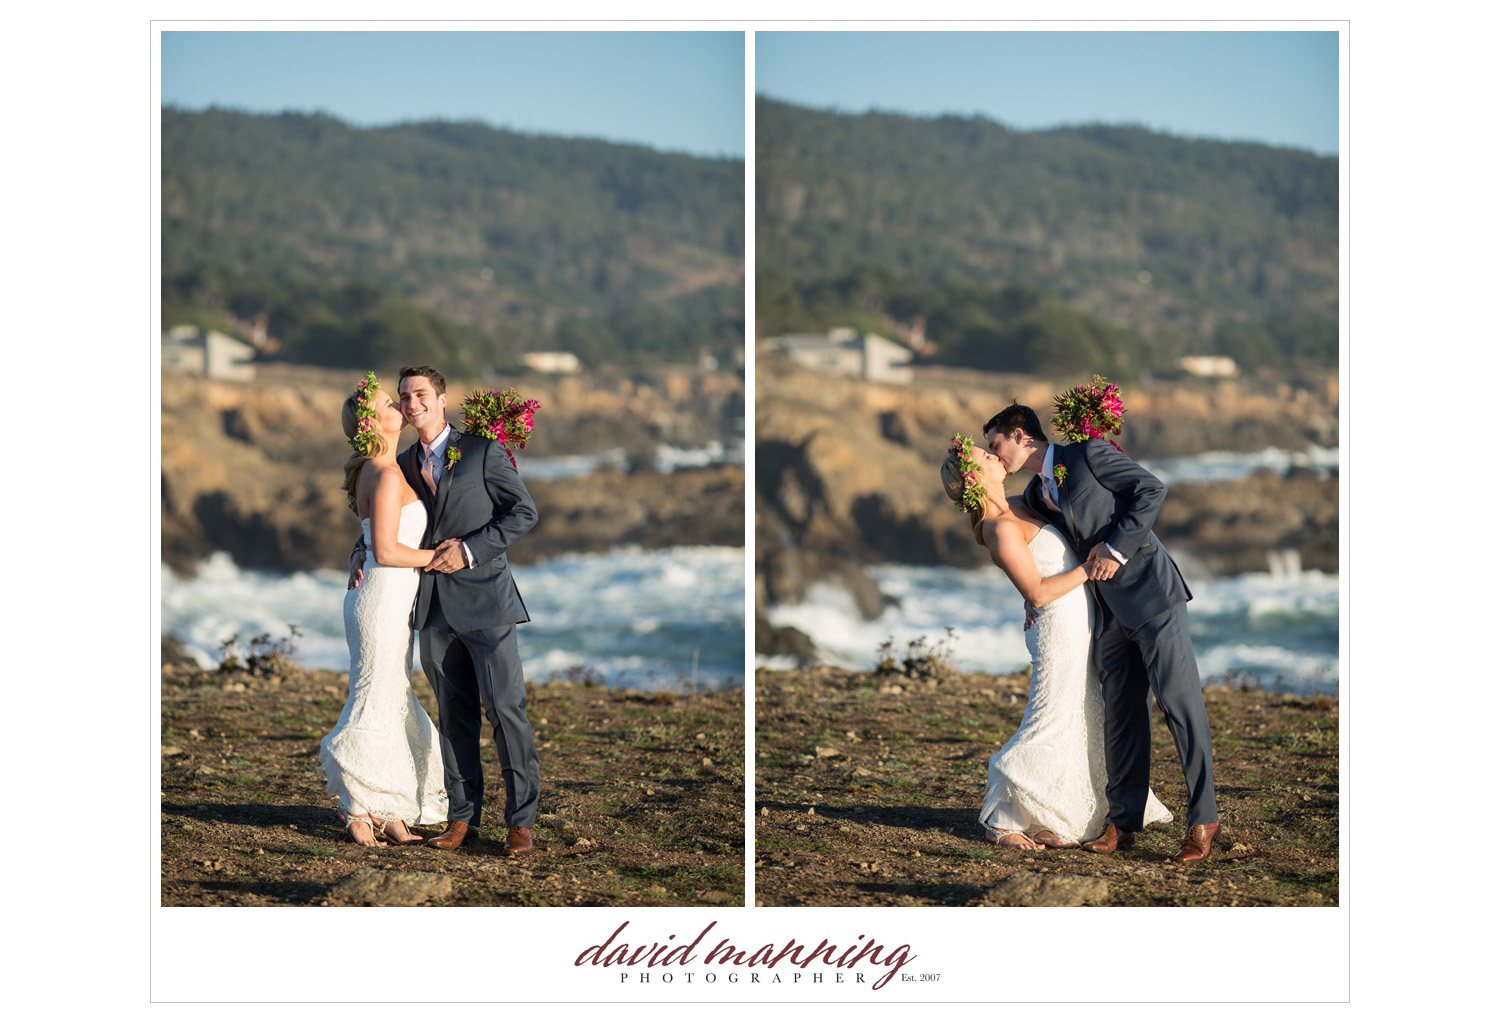 Sea-Ranch-Sonoma-Destination-Wedding-David-Manning-Photographers-141101-0035.jpg